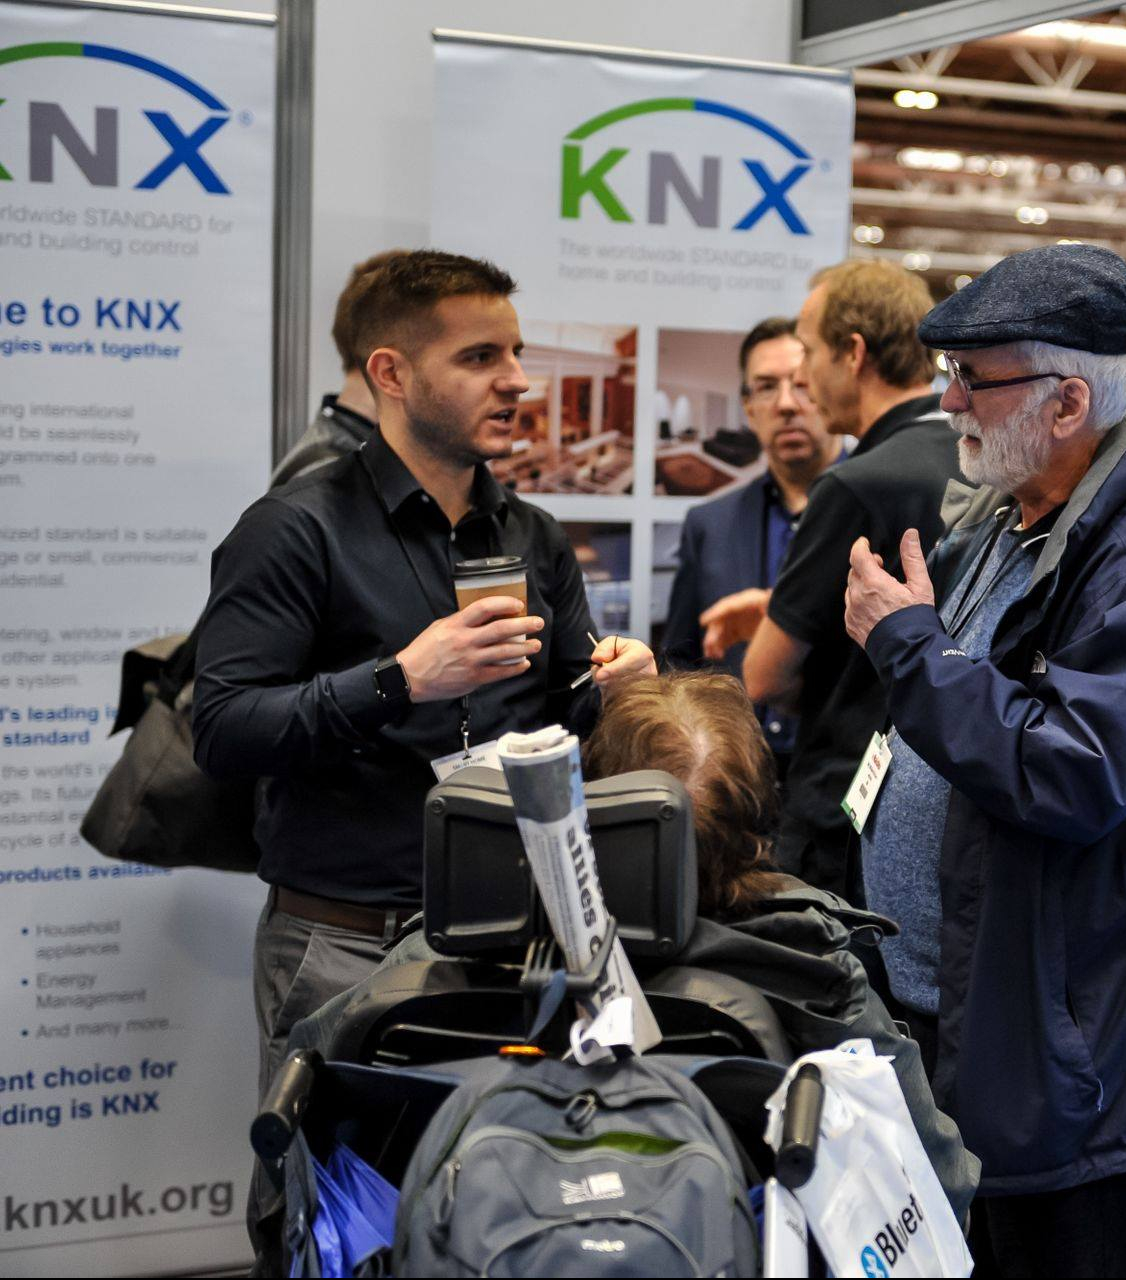 KNX UK presente en Smart Home Expo Birmingham